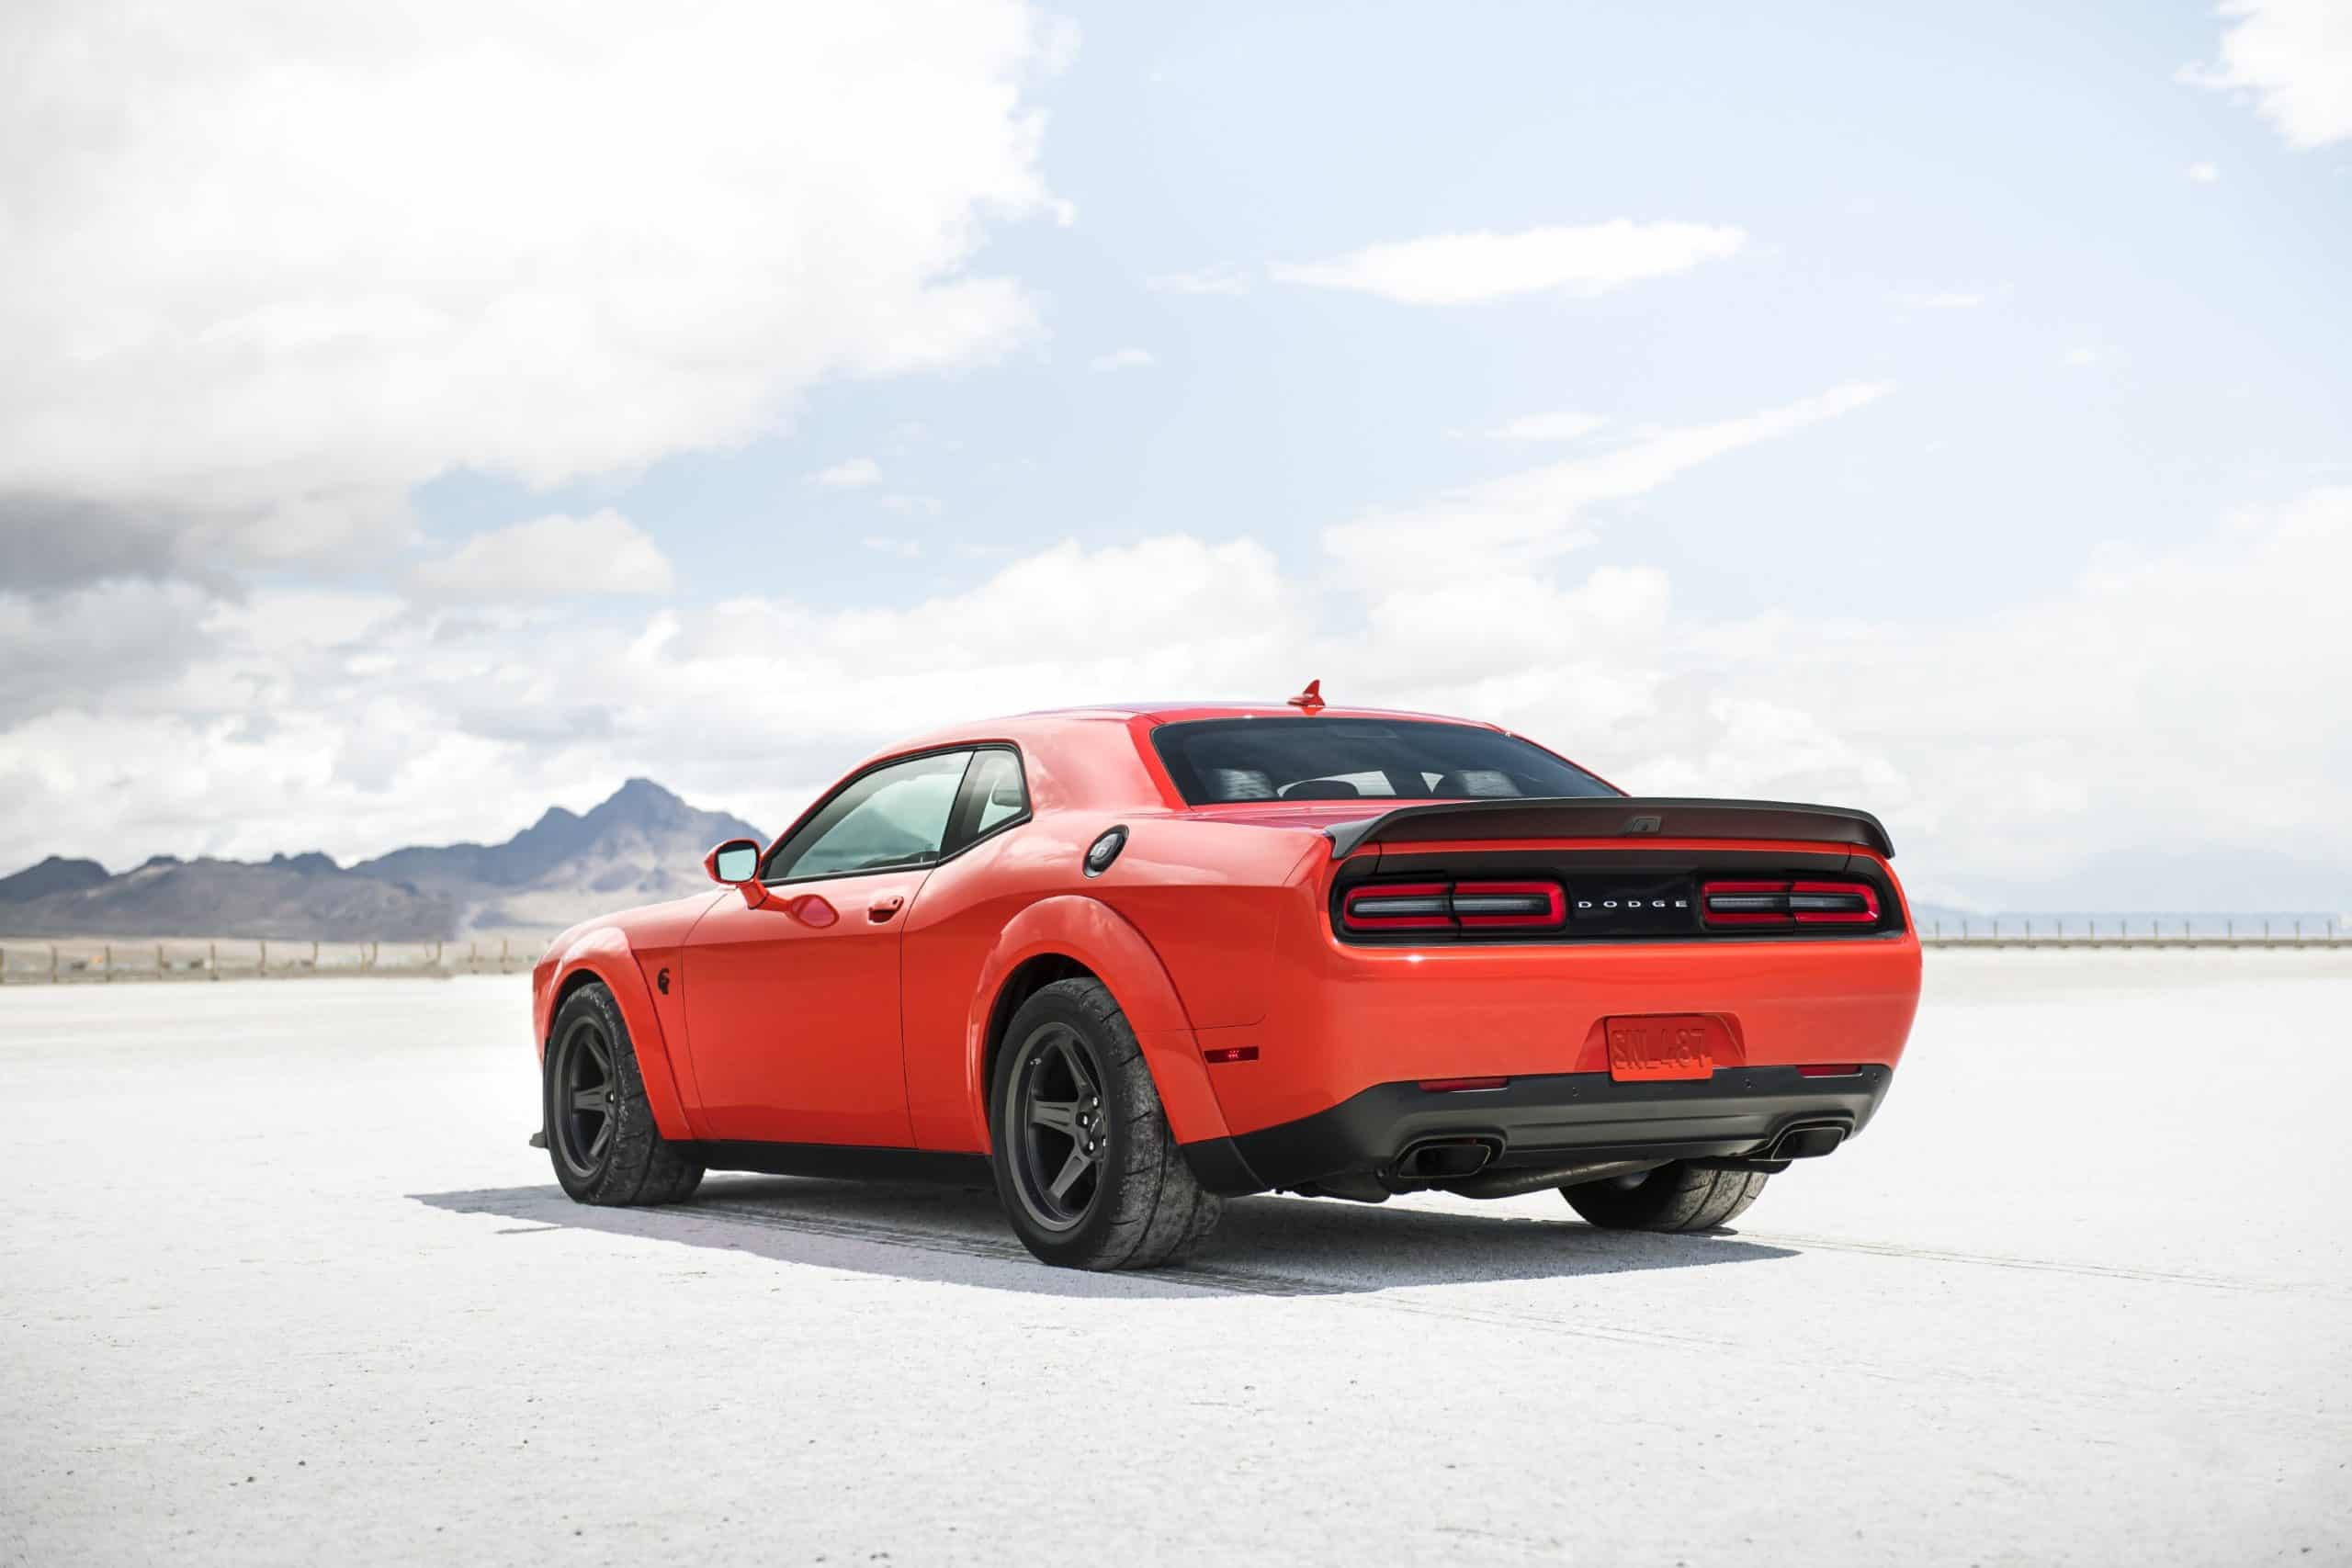 2020 Dodge Challenger SRT Super Stock rear view